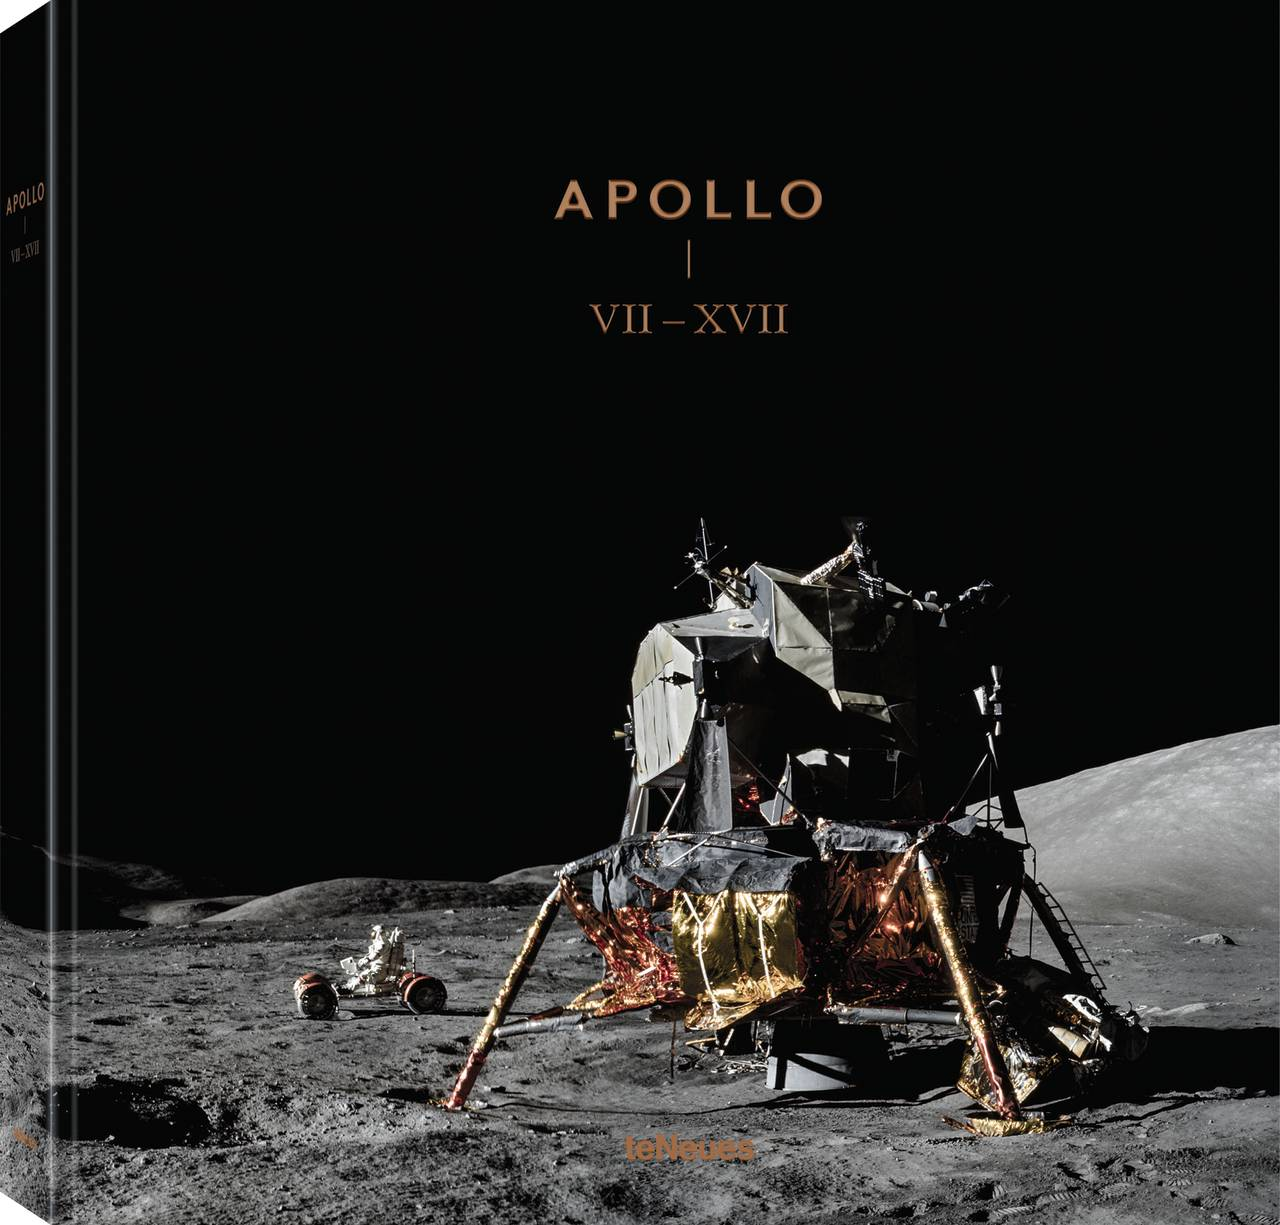 © APOLLO VII-XVII - Floris Heyne, Joel Meter, Simon Phillipson and Delano Steenmeijer, published by teNeues, www.teneues.com, Apollo 17, Photo © courtesy of The National Aeronautics and Space Administration (NASA) photographic archives